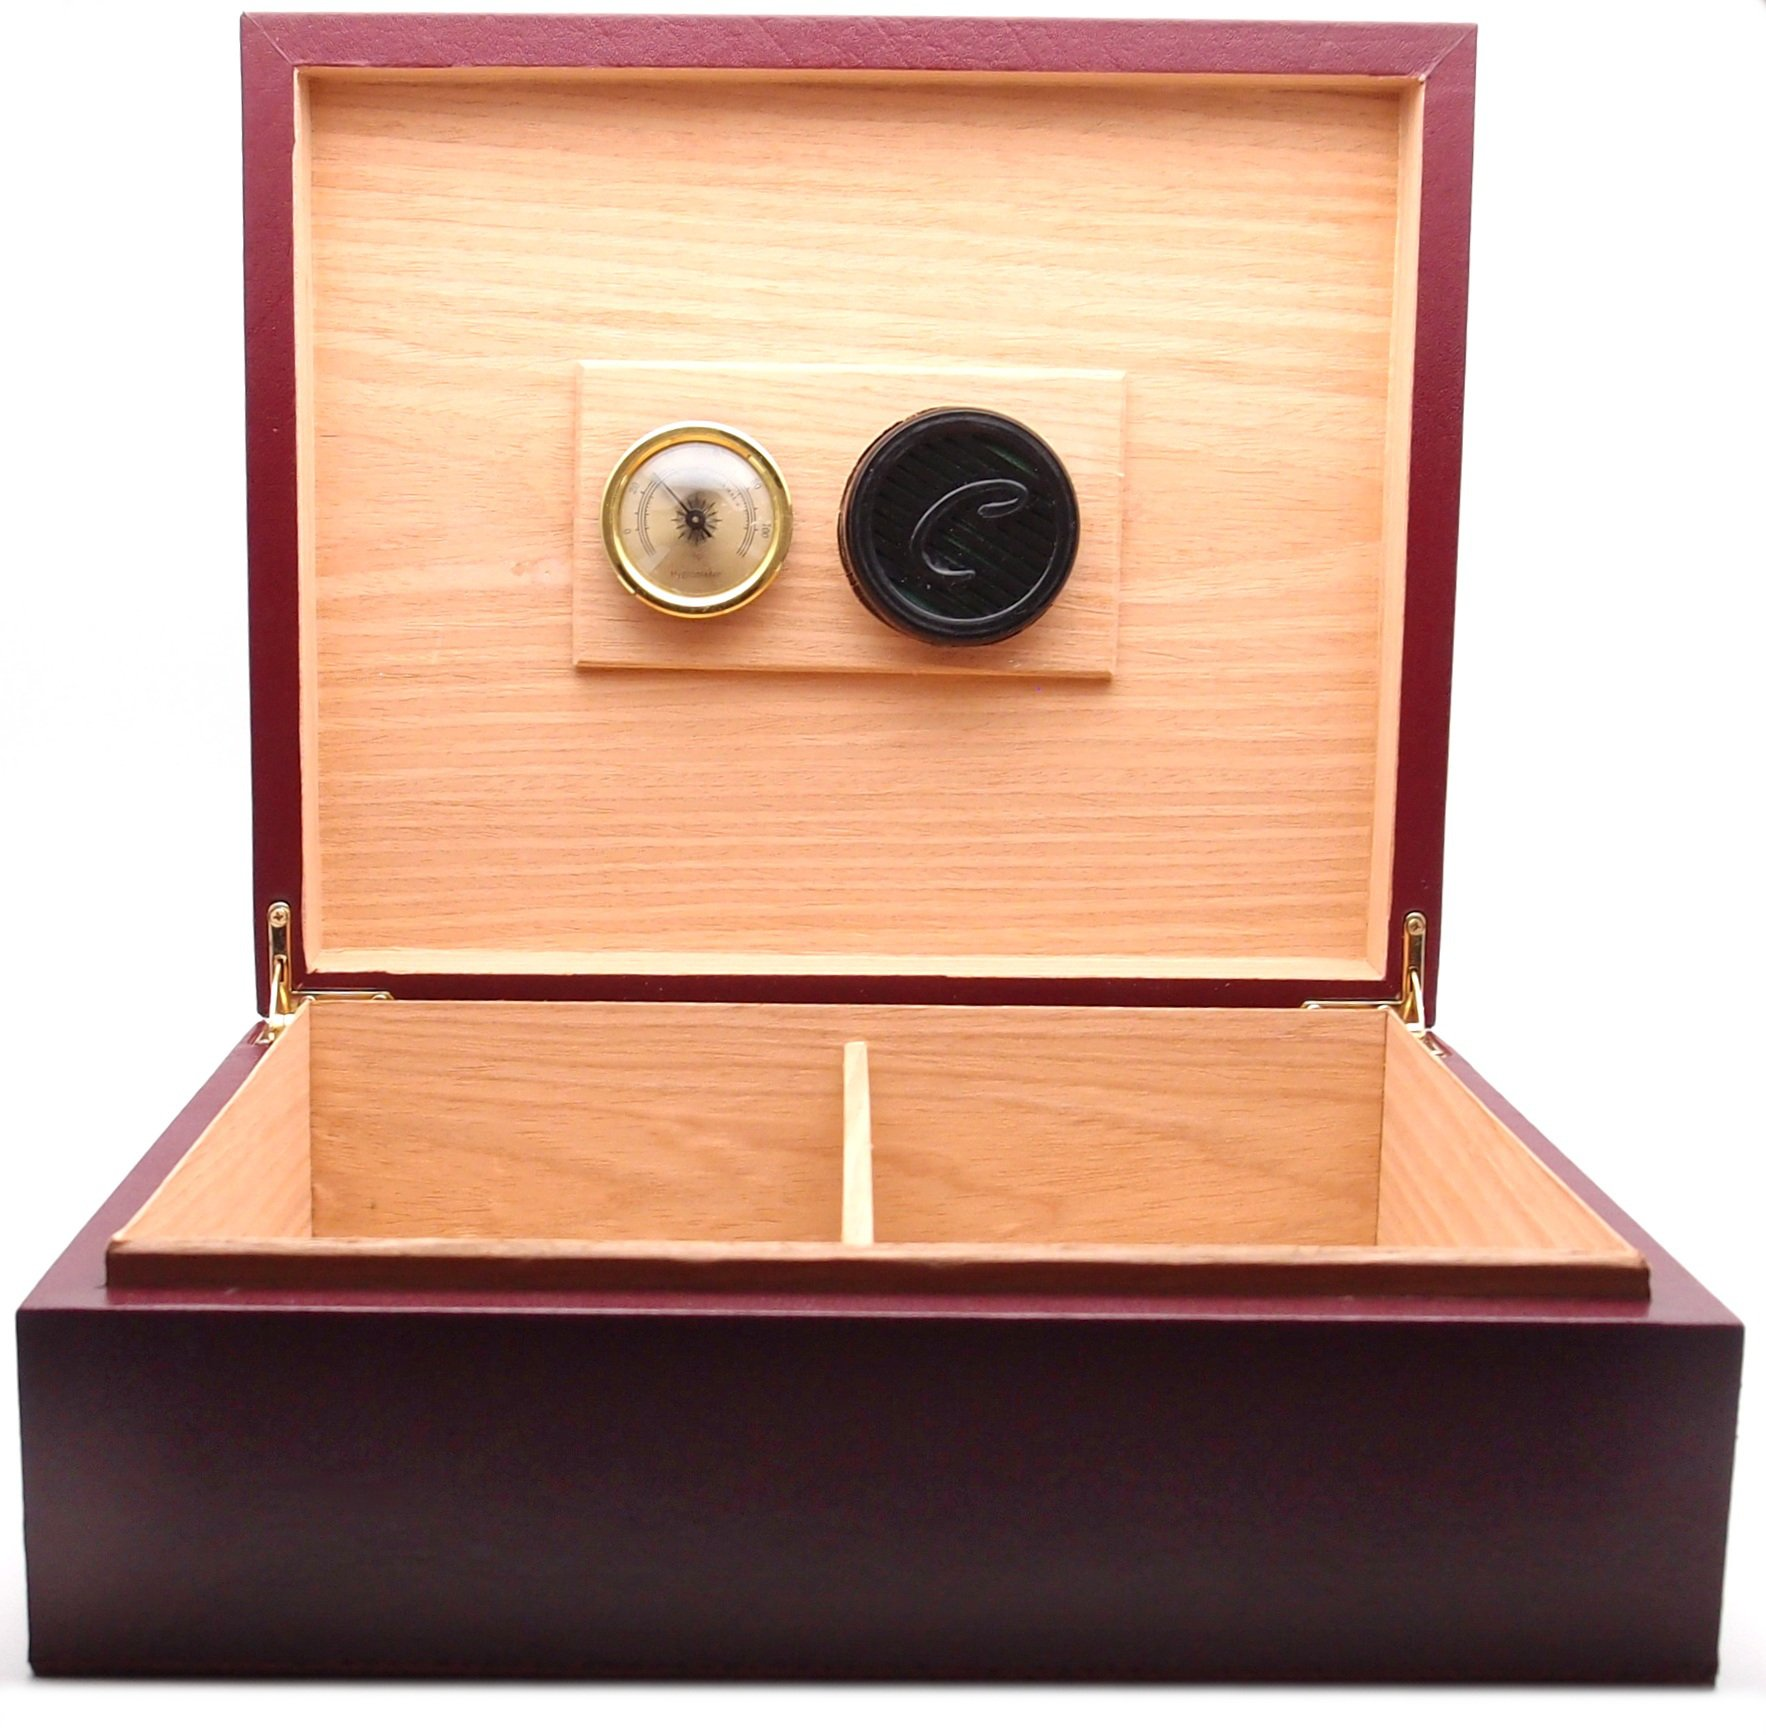 Desktop Leather Cigar Humidor Handcrafted - Authentic Full Grade Buffalo Hide Leather - Burgundy